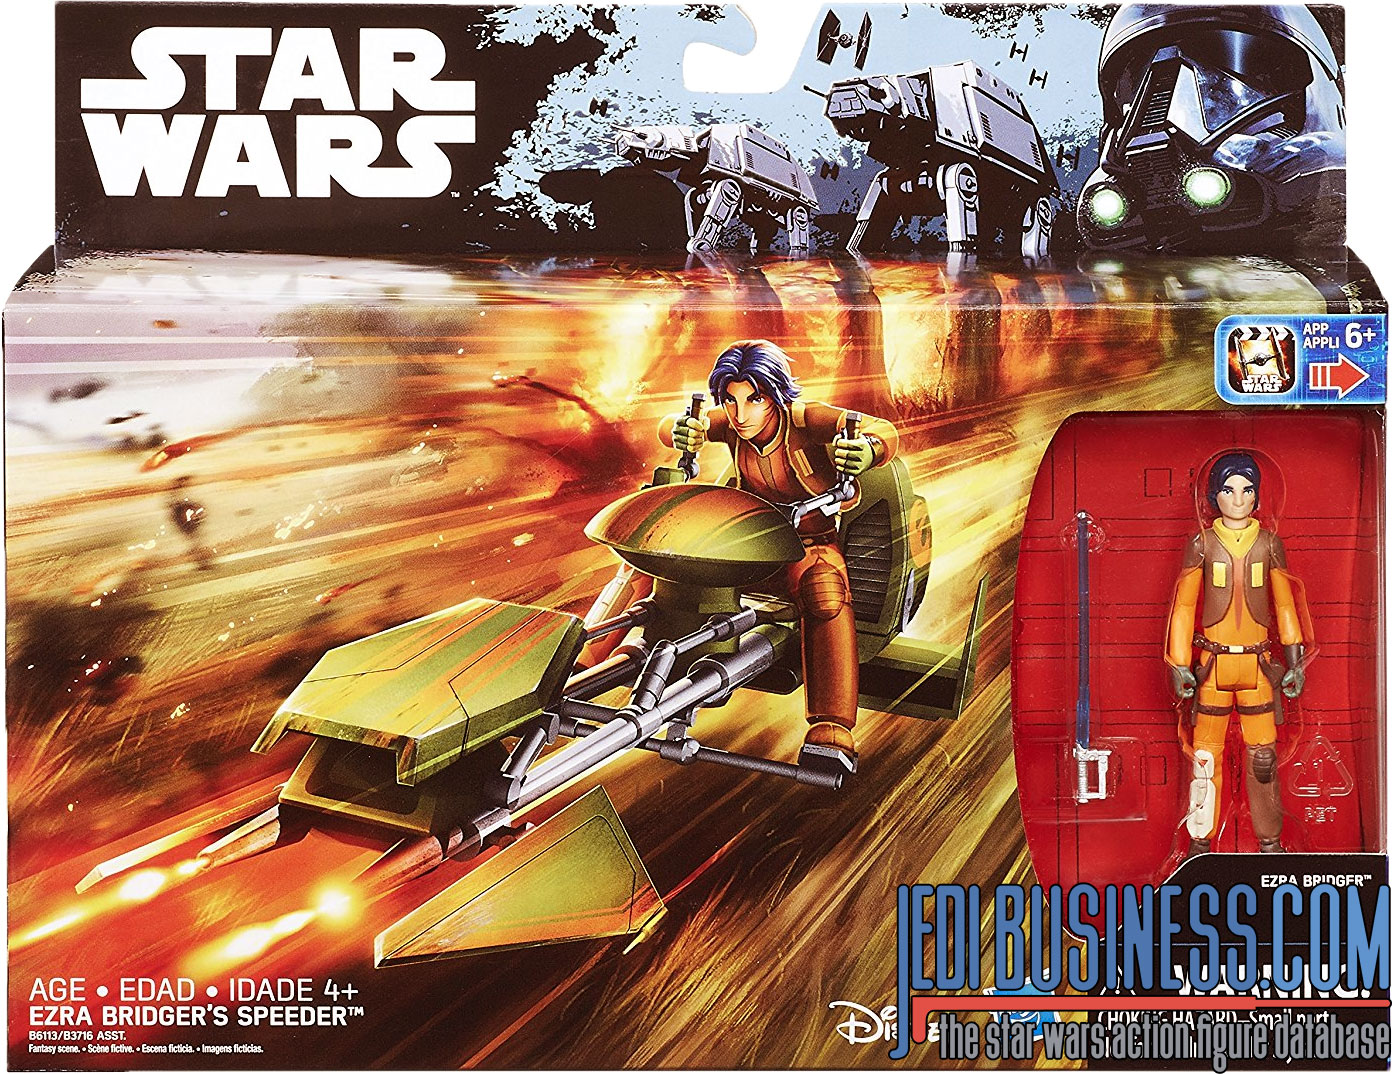 Ezra Bridger, With Ezra Bridger's Speeder